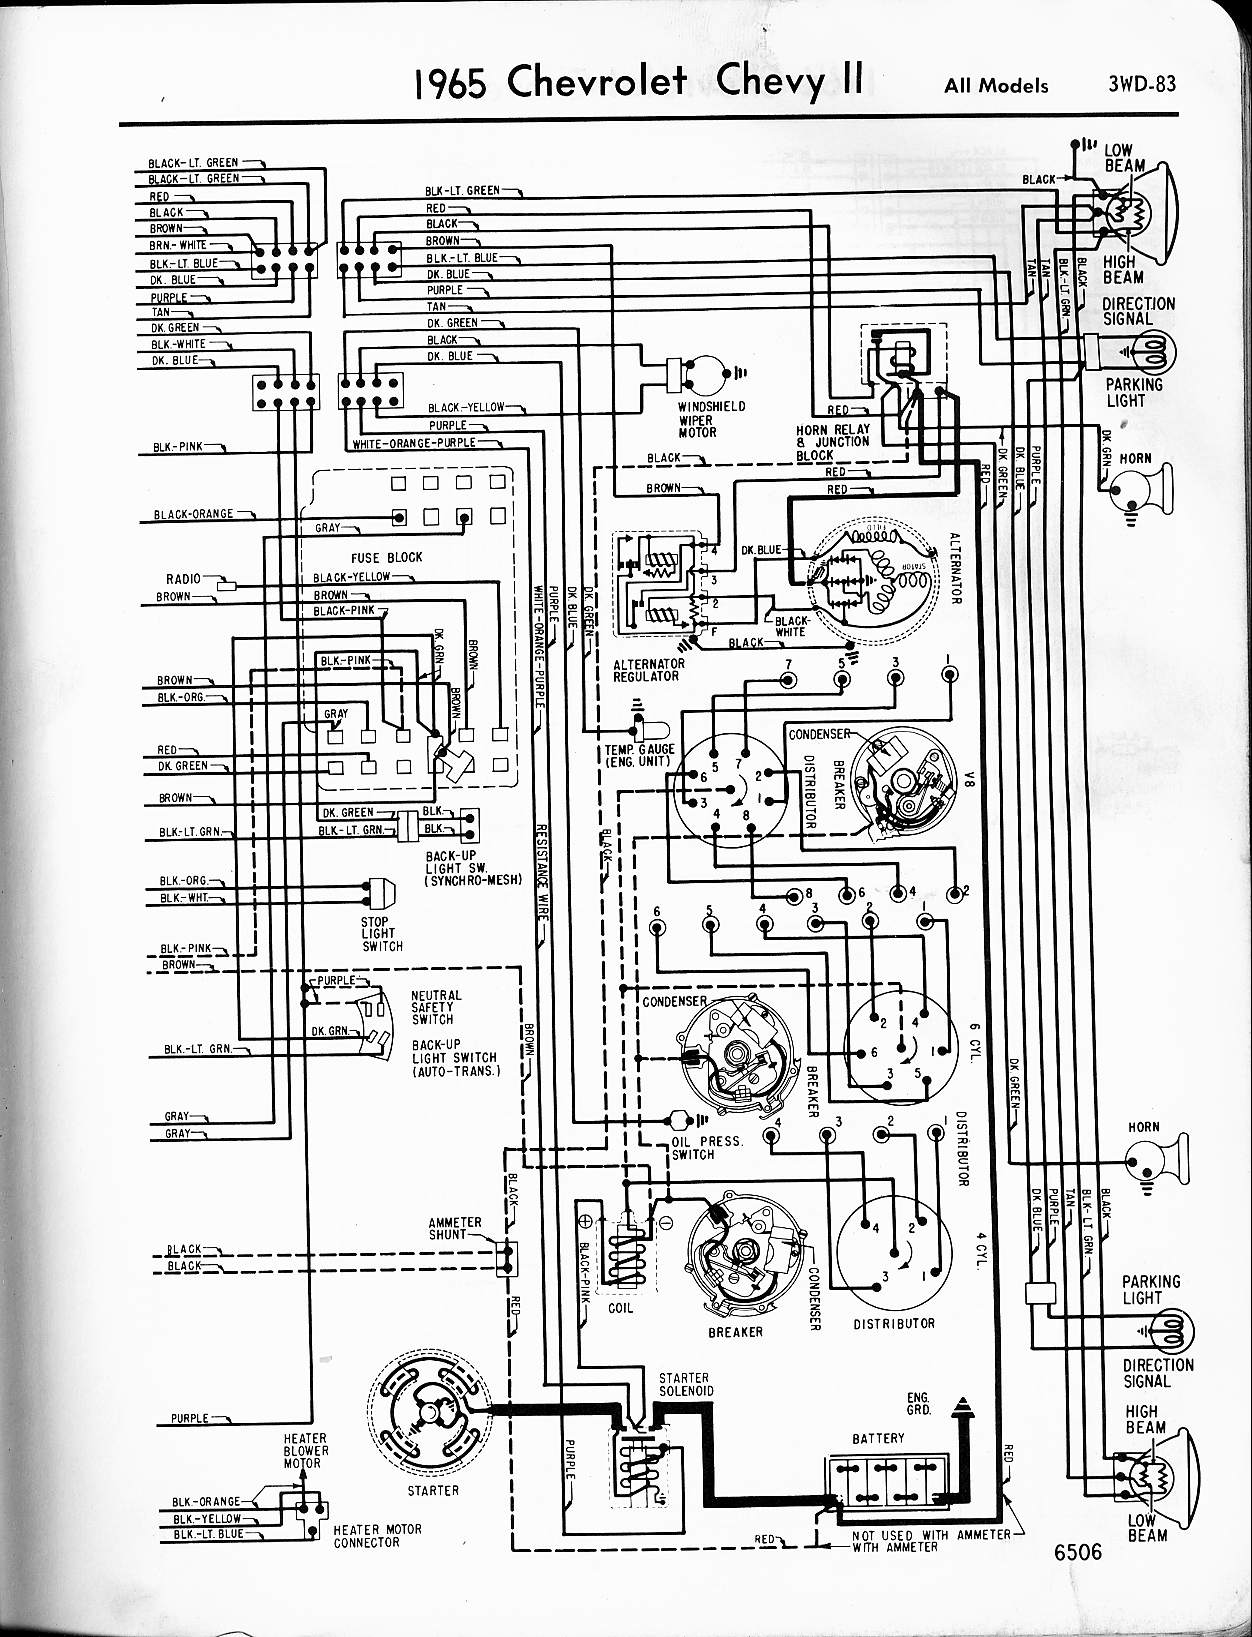 MWireChev65_3WD 083 chevy diagrams mustang ii wiring diagram at eliteediting.co